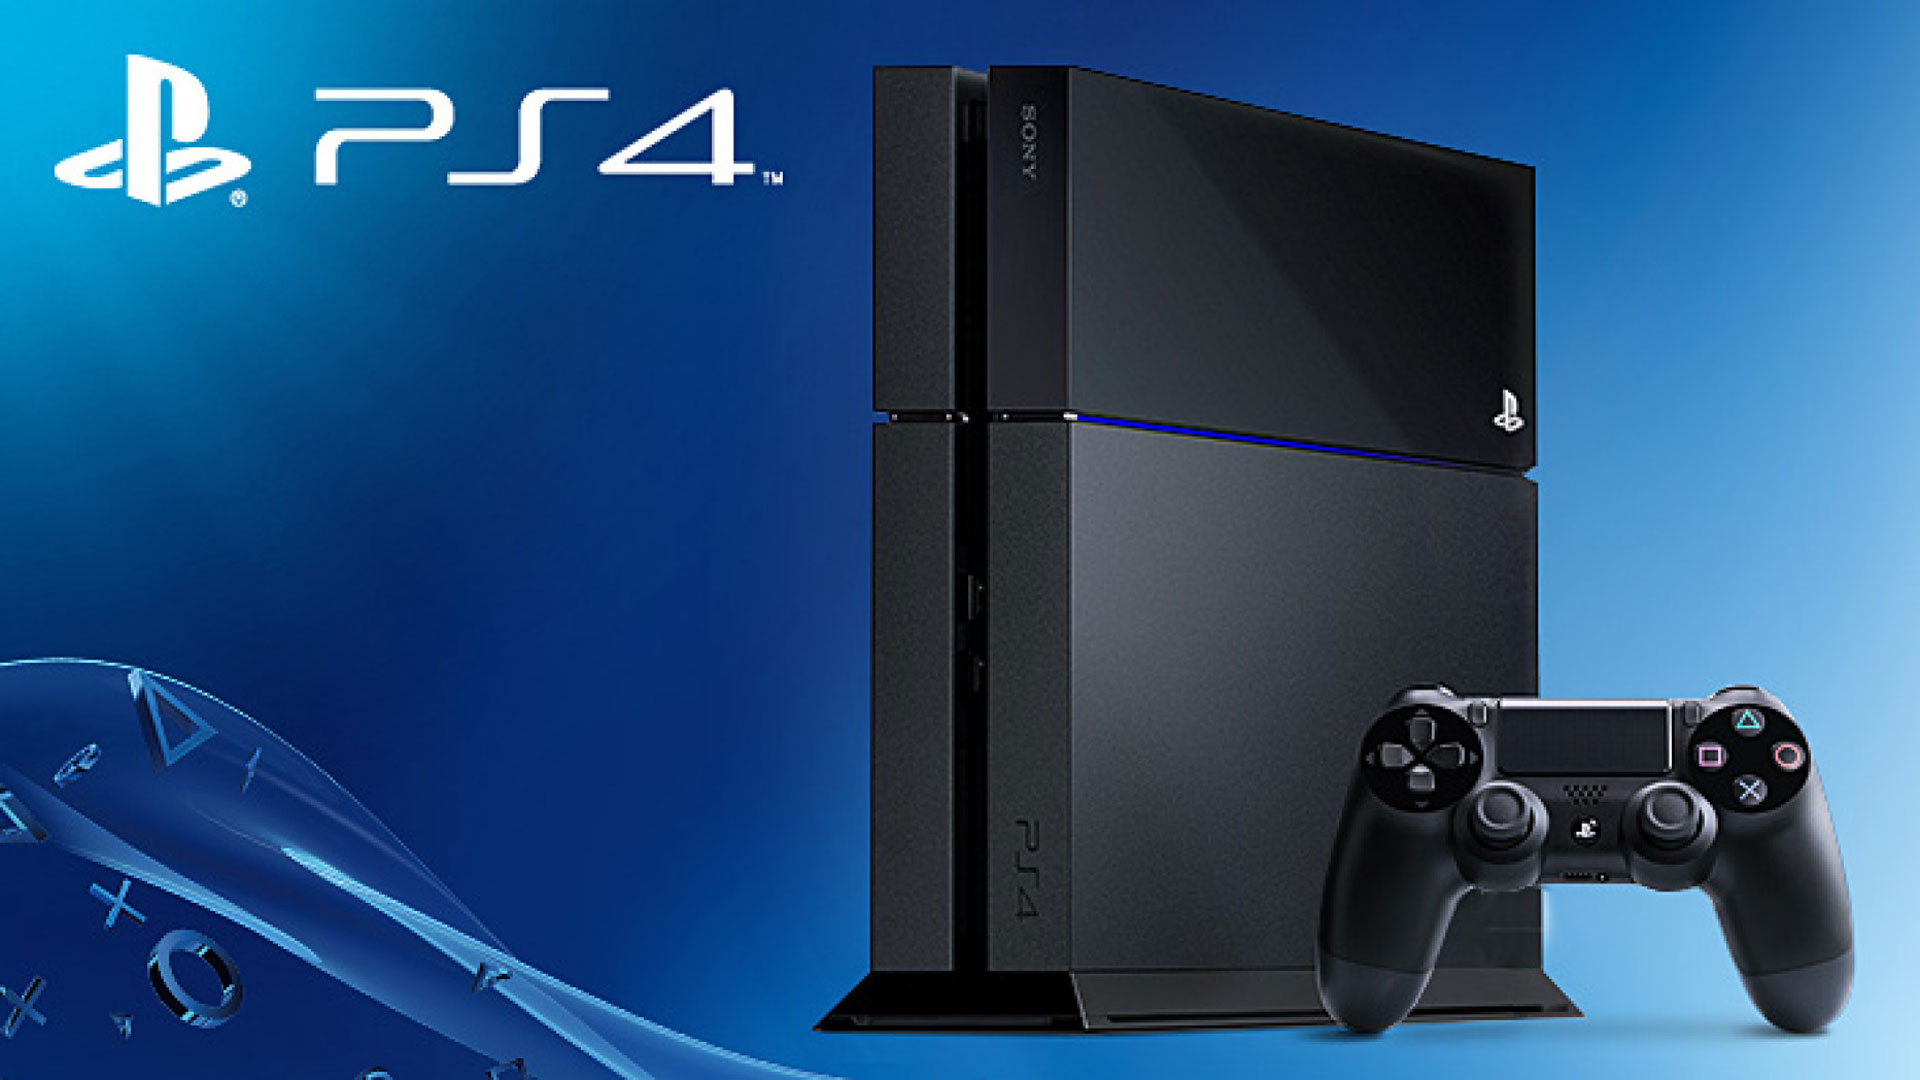 PS4 Update Offers External HDD Compatibility